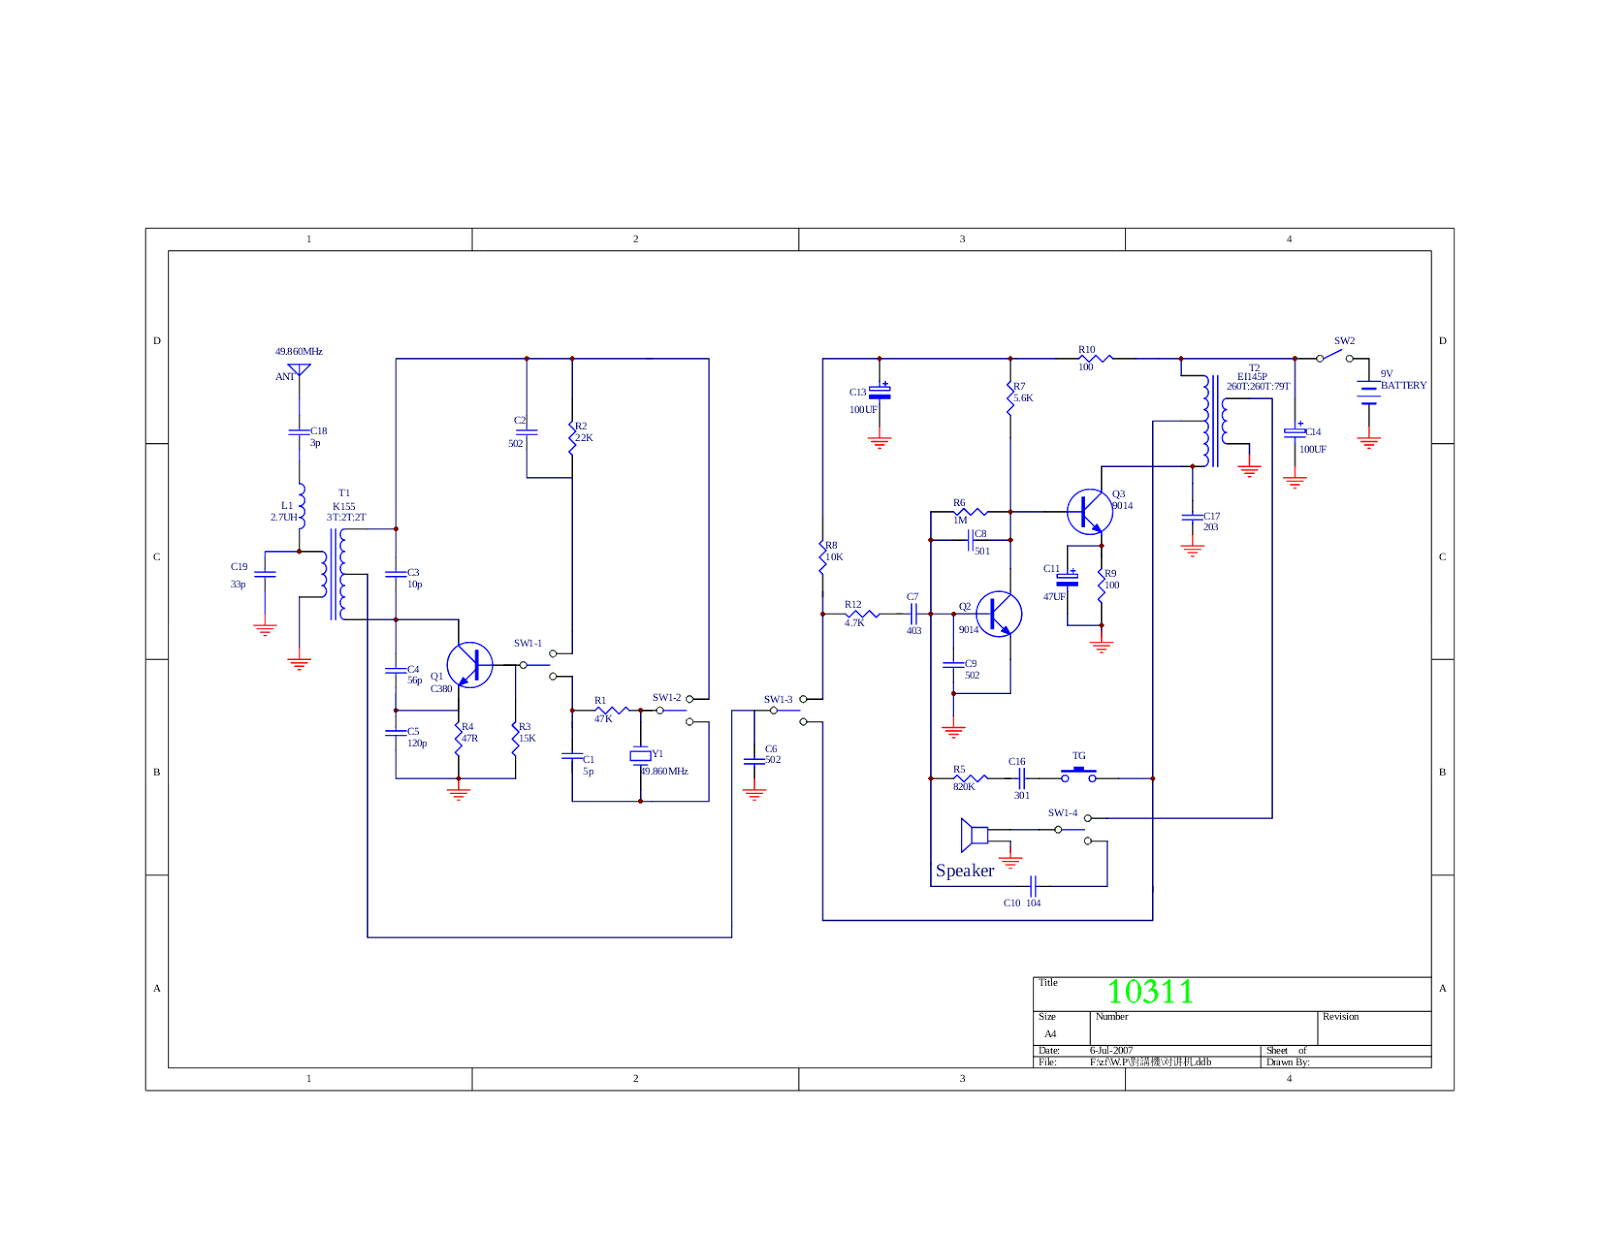 Simple walkie talkie circuit diagram easy to build simple this simple walkie talkie circuit is very easy to build for your home made walkie talkie project ccuart